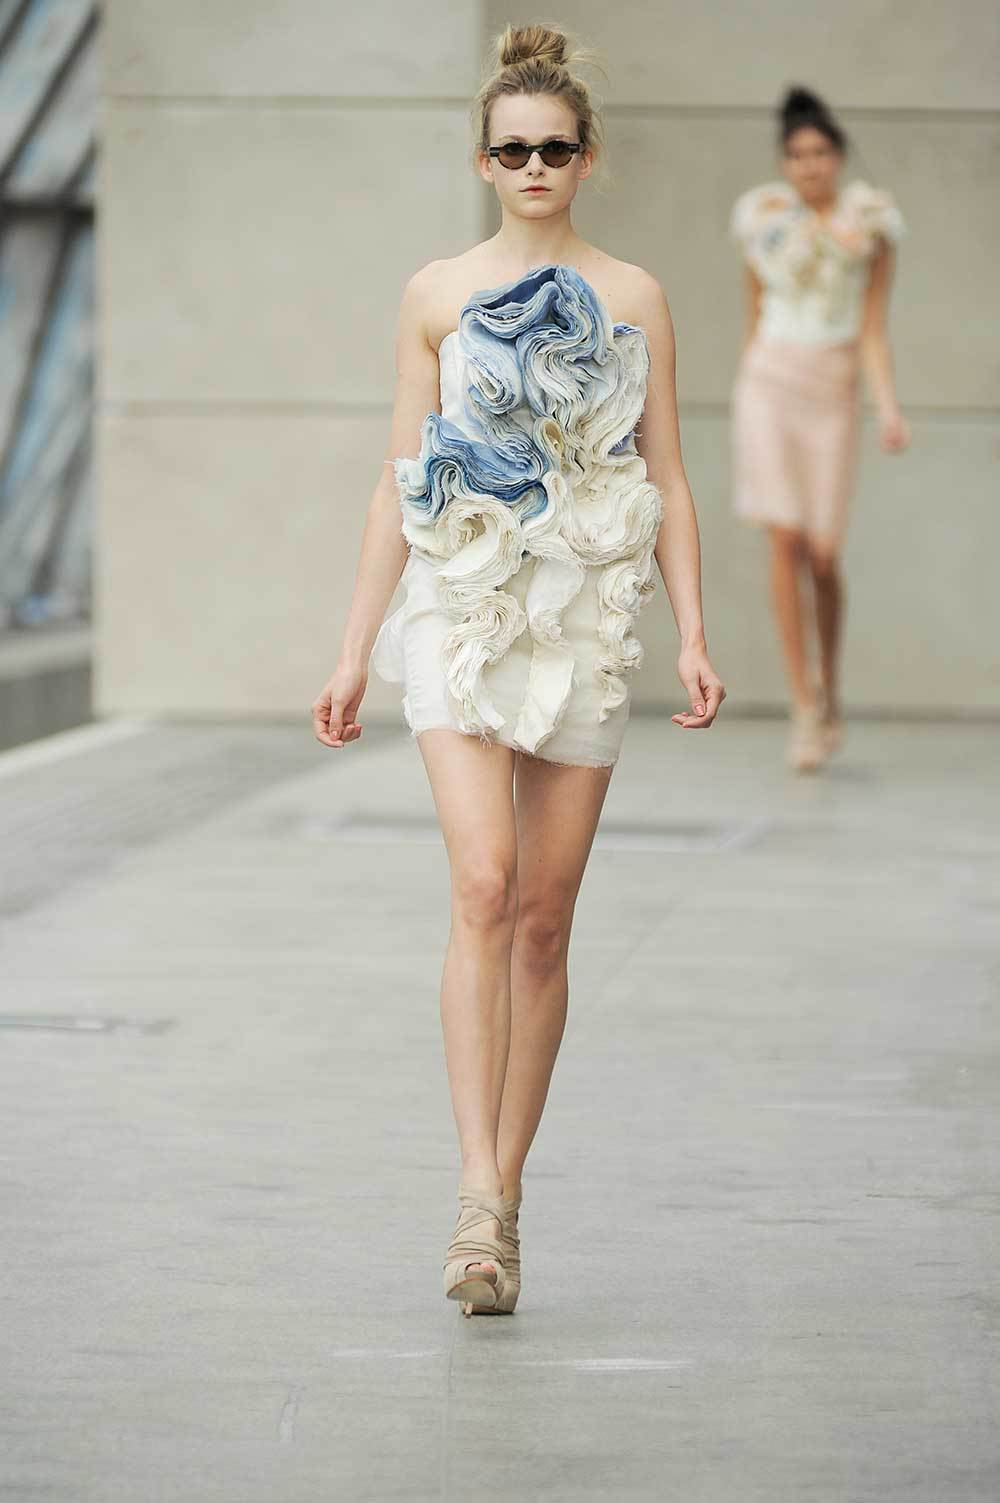 Felicity-Brown-SS11-05-Quartz-Ruffle-Dress.jpg